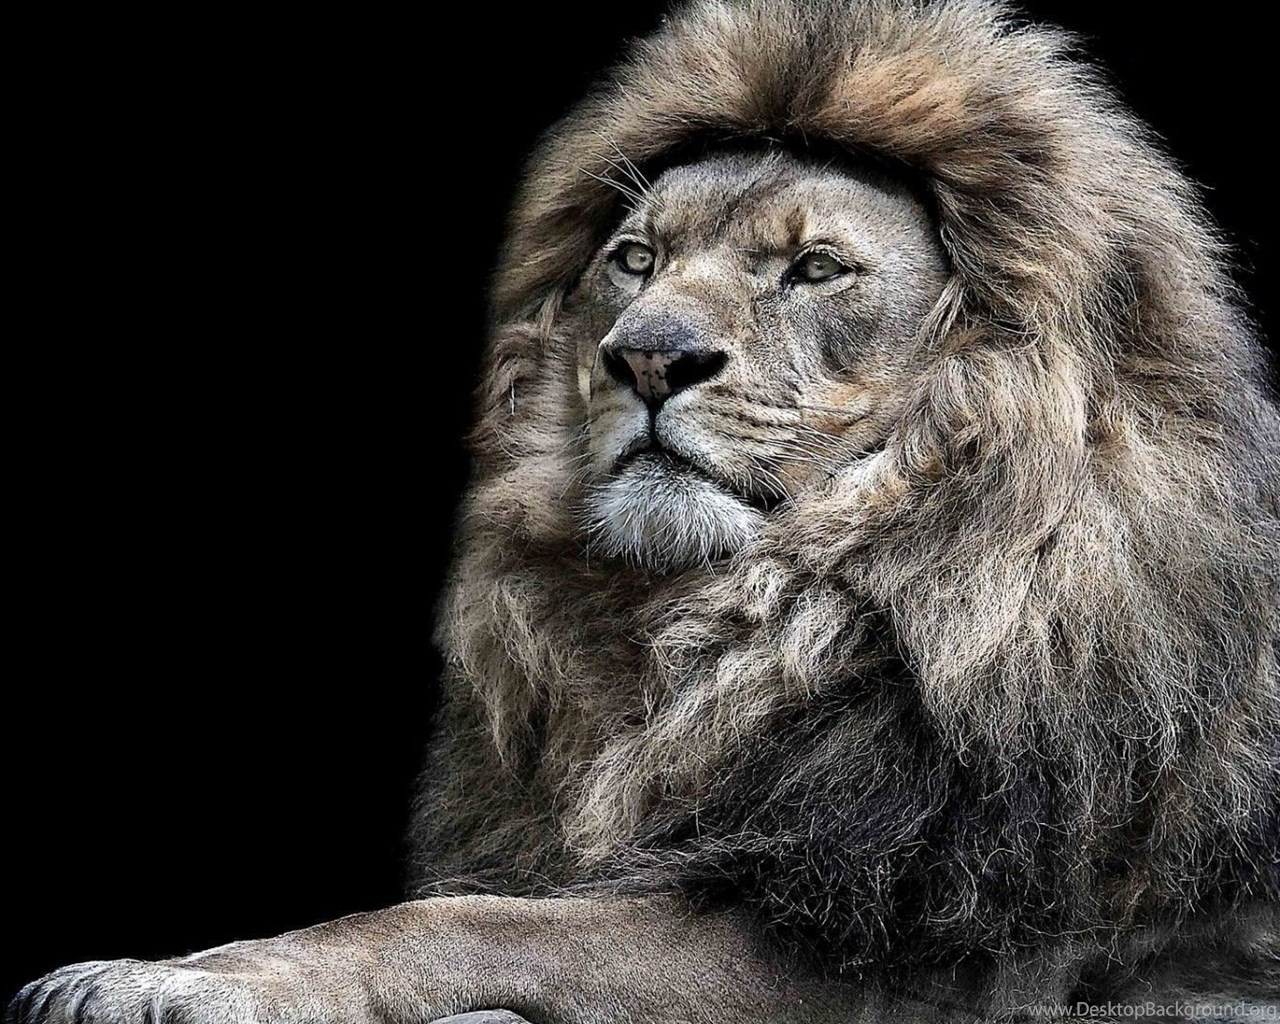 Best 25 Lion Hd Wallpaper Ideas On Pinterest: Top Hd White Lion Wallpaper Images For Pinterest Desktop